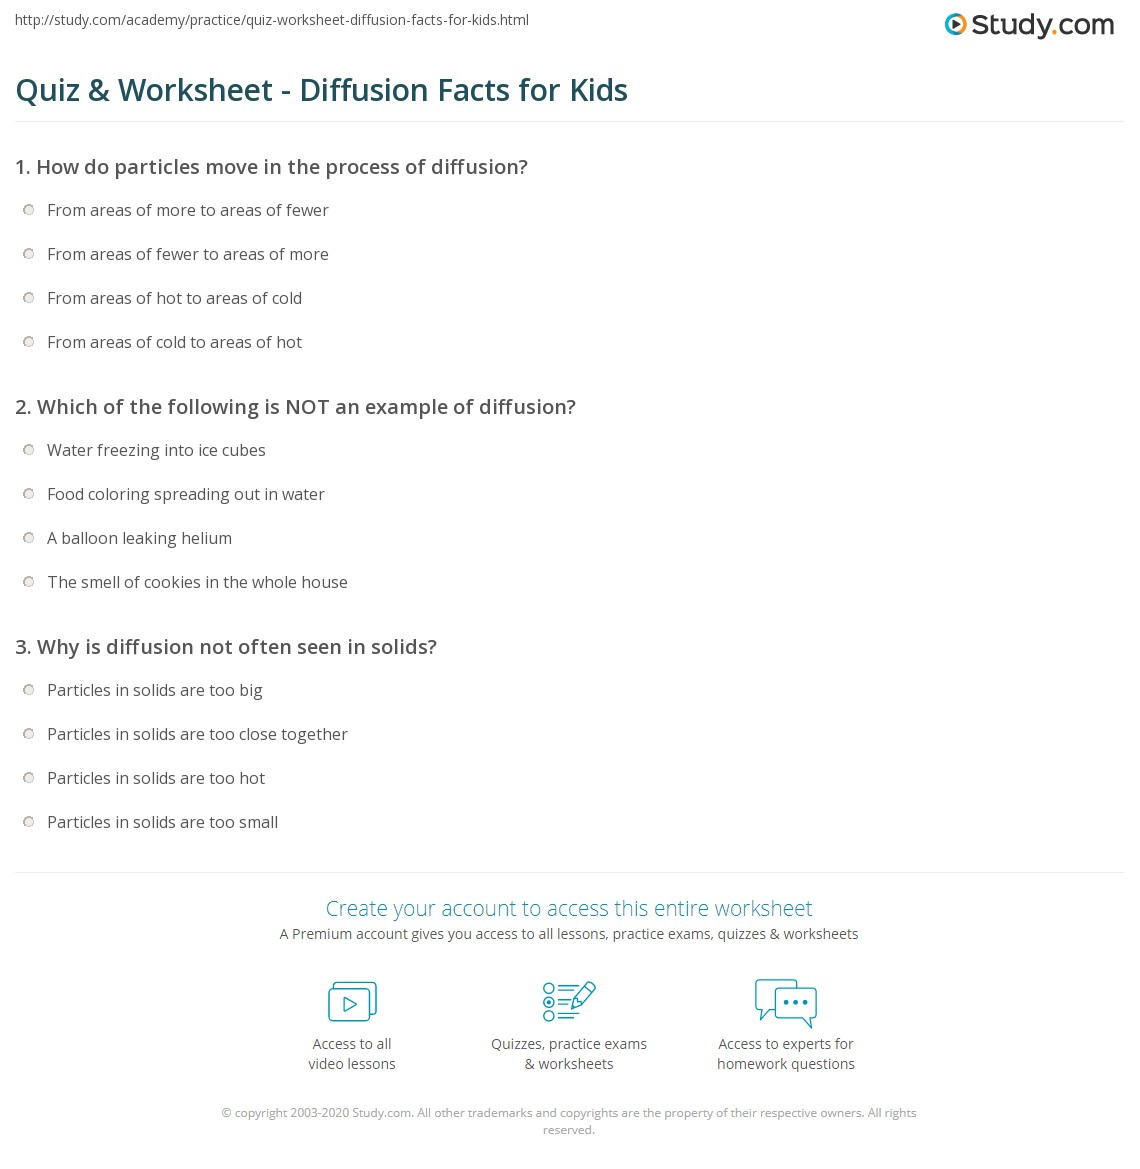 quiz worksheet diffusion facts for kids. Black Bedroom Furniture Sets. Home Design Ideas